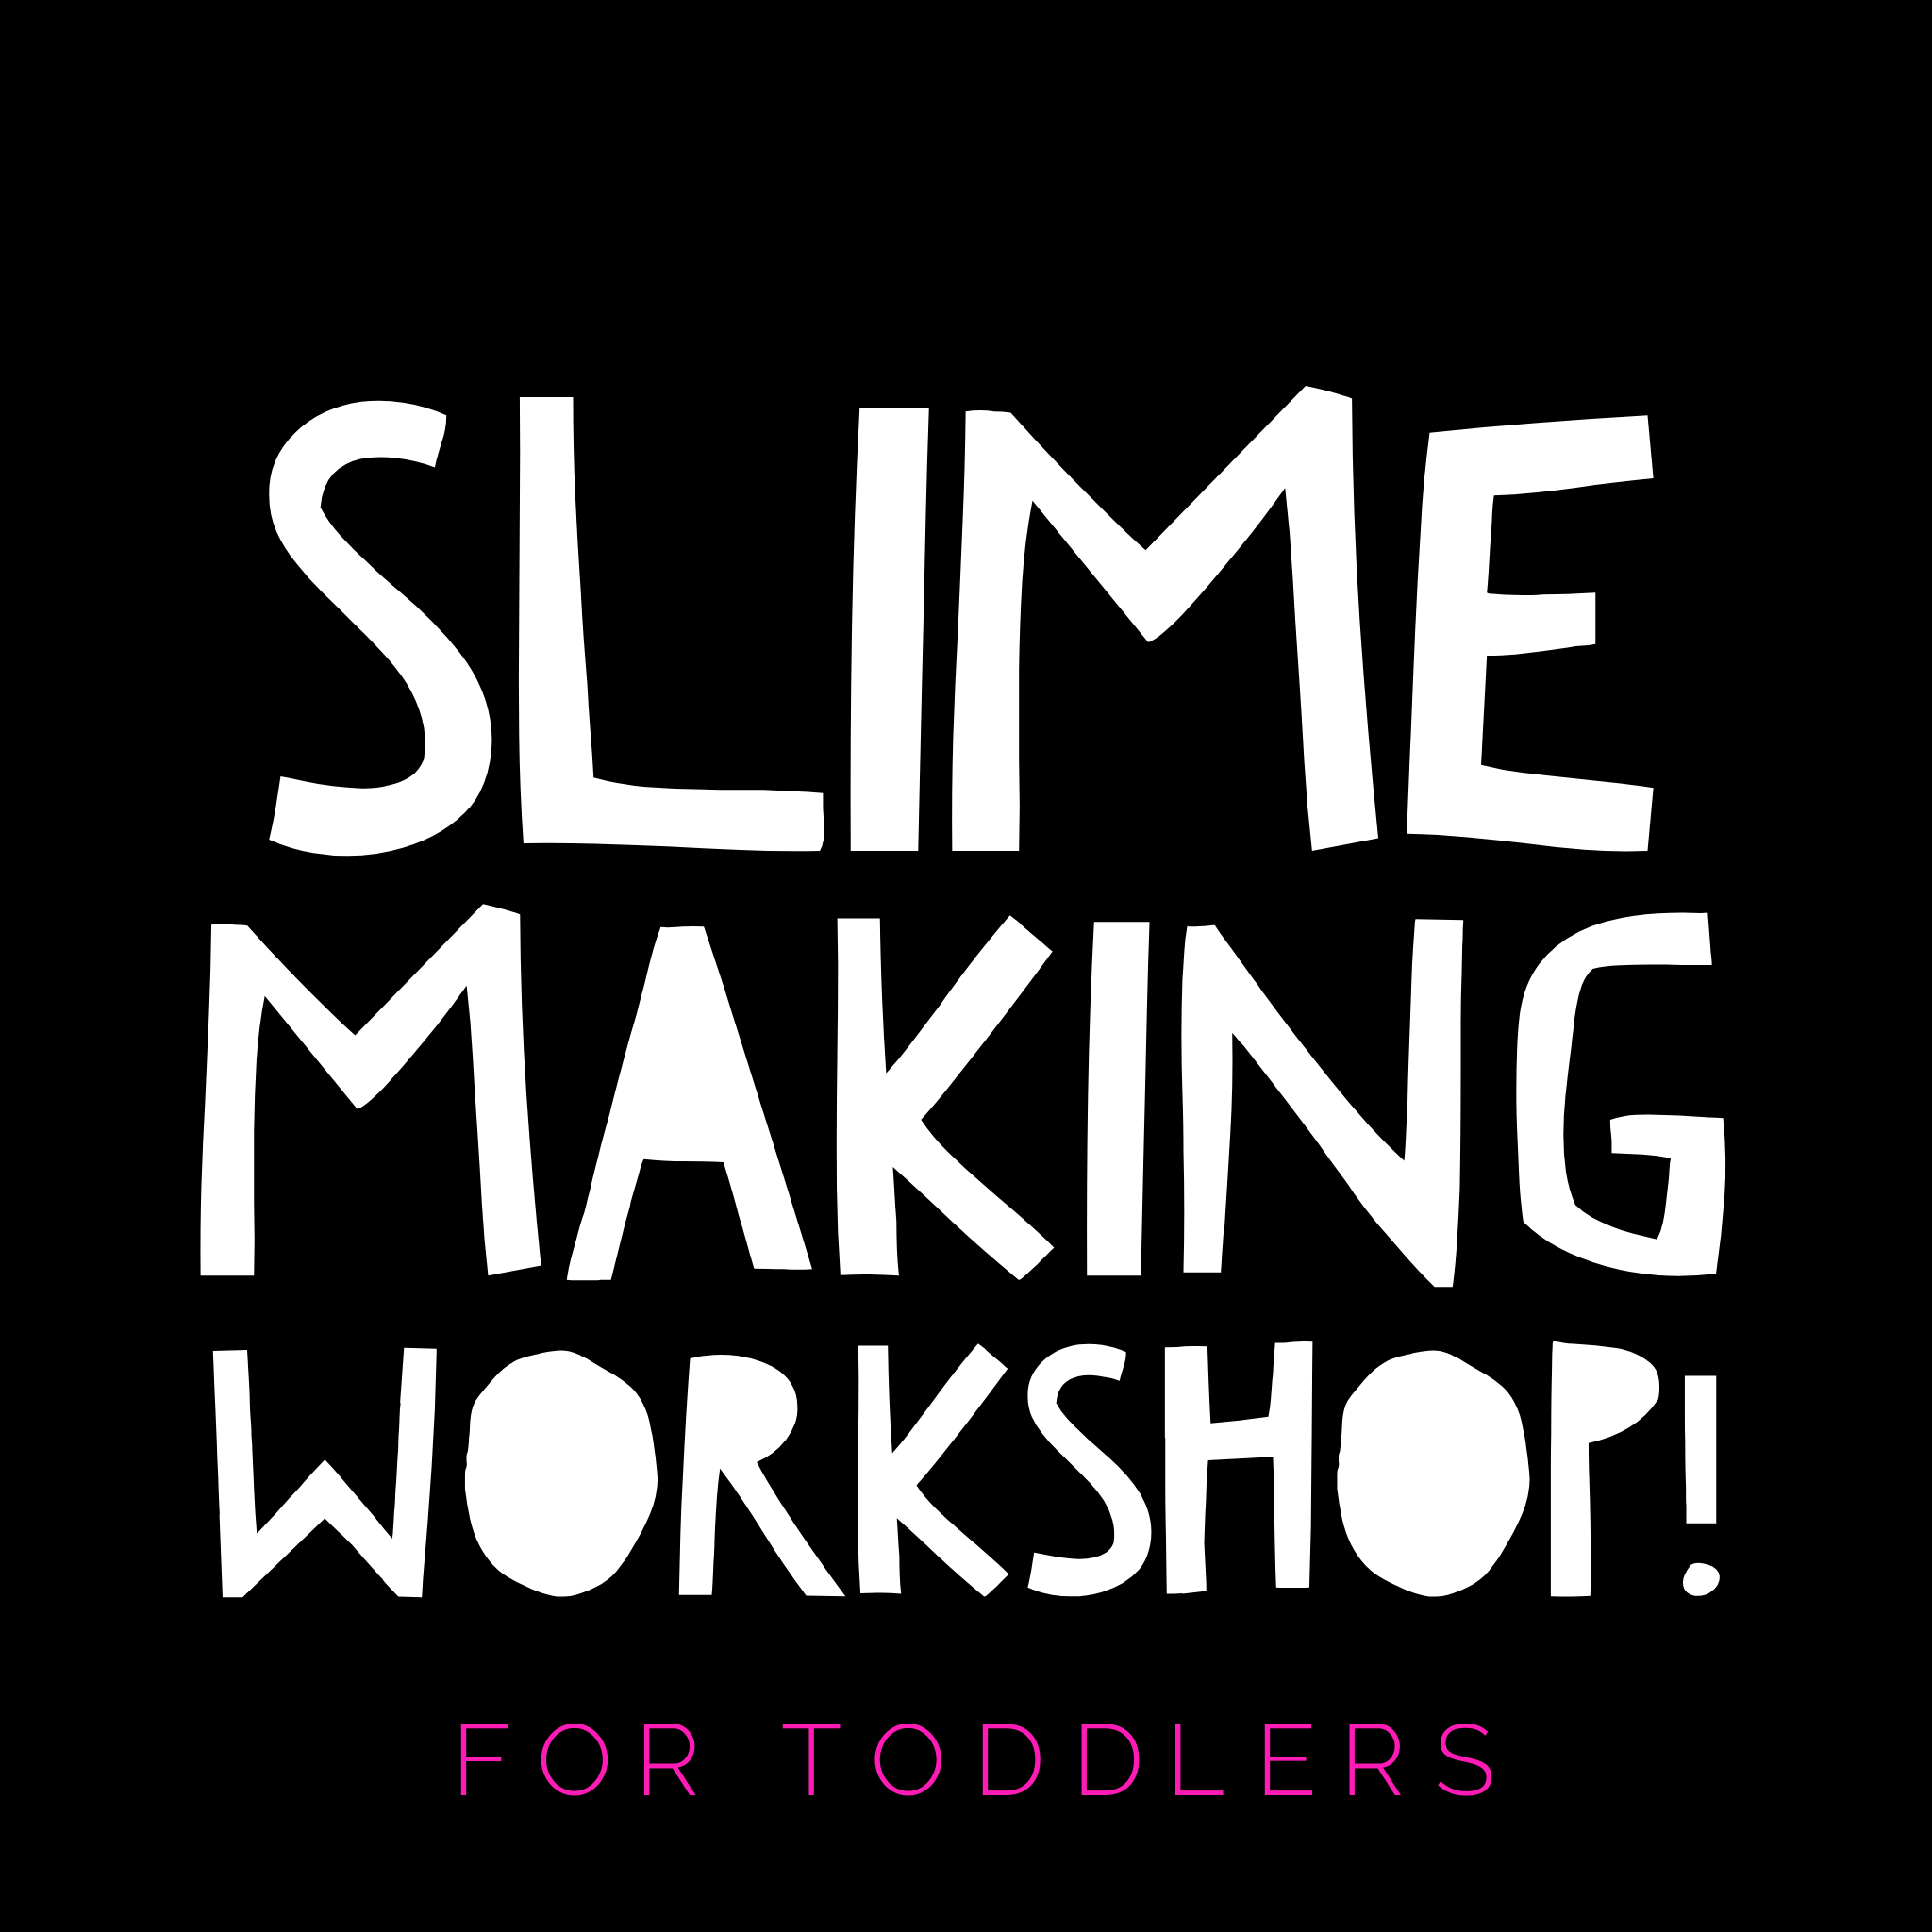 slime making workshop